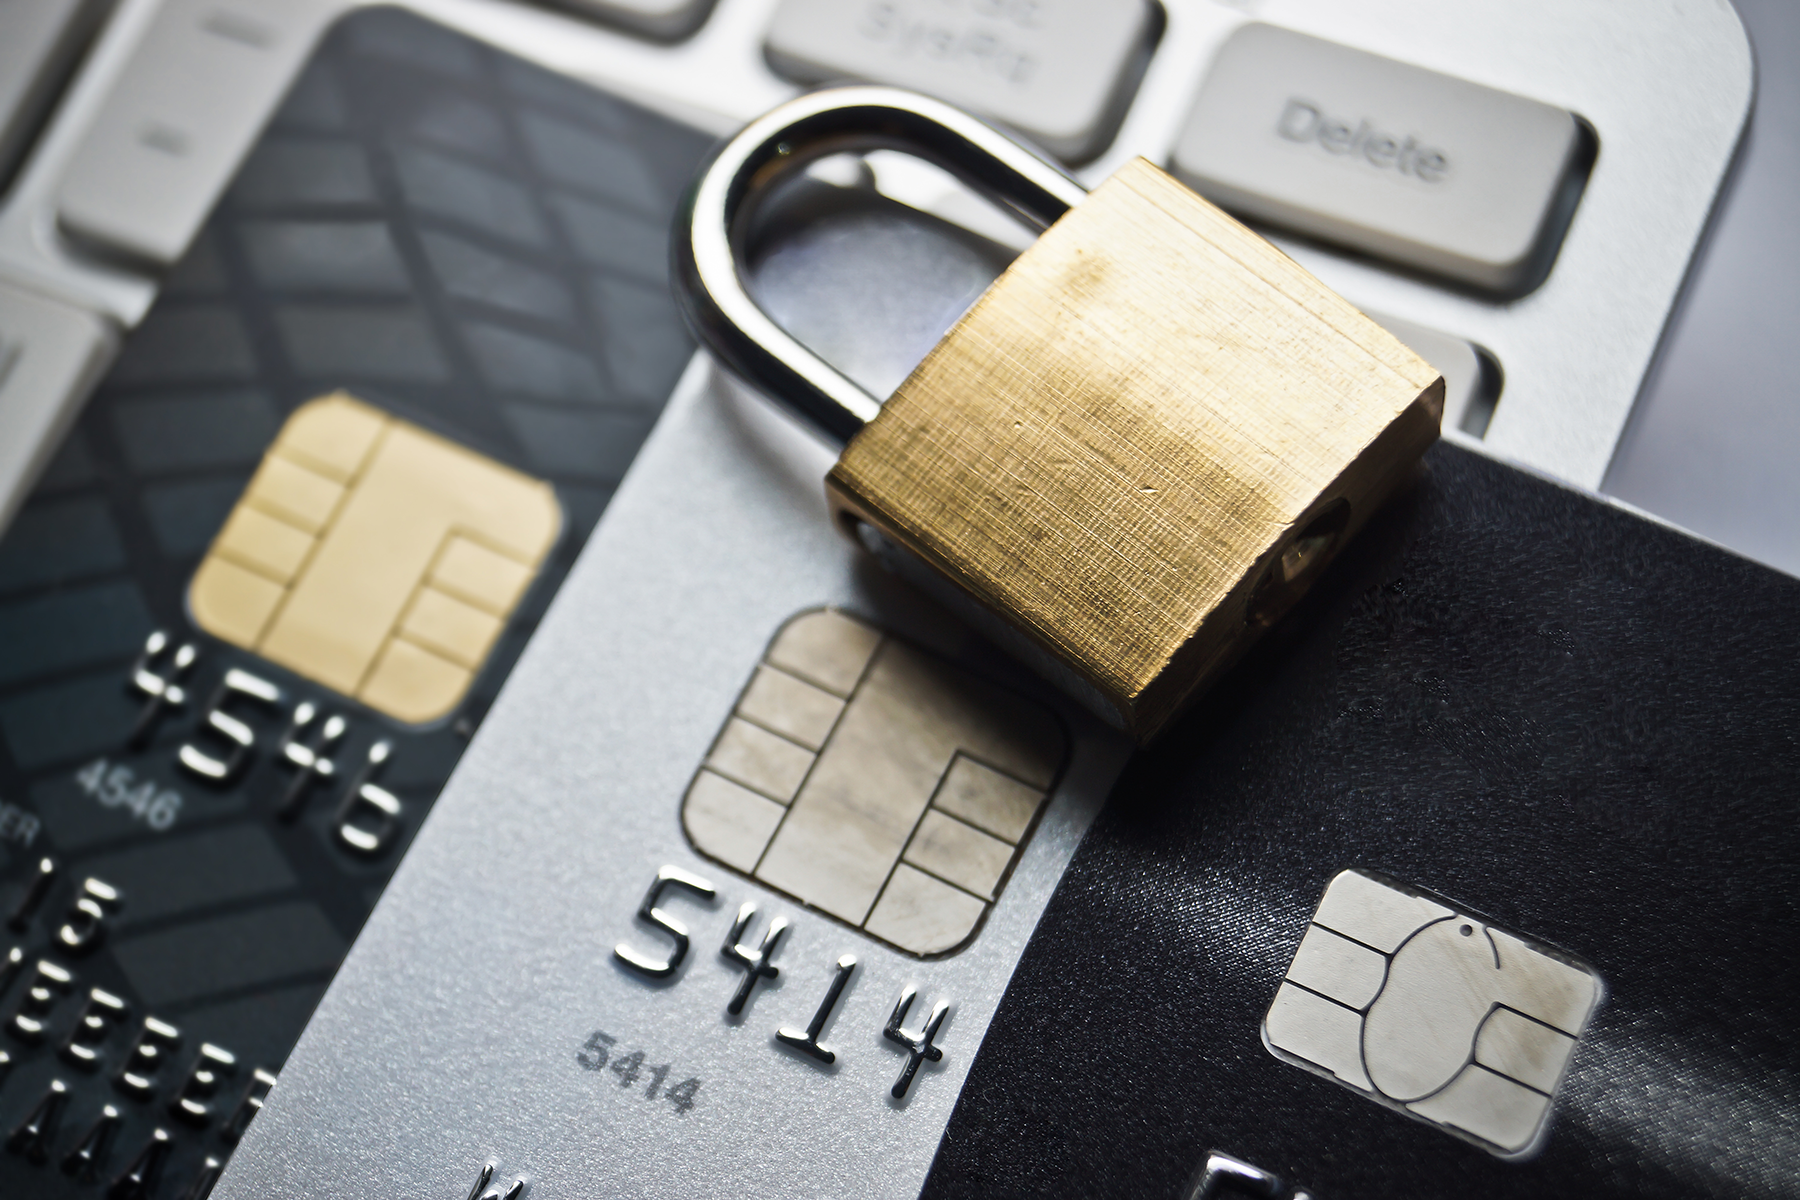 Image of a credit card secured by a lock